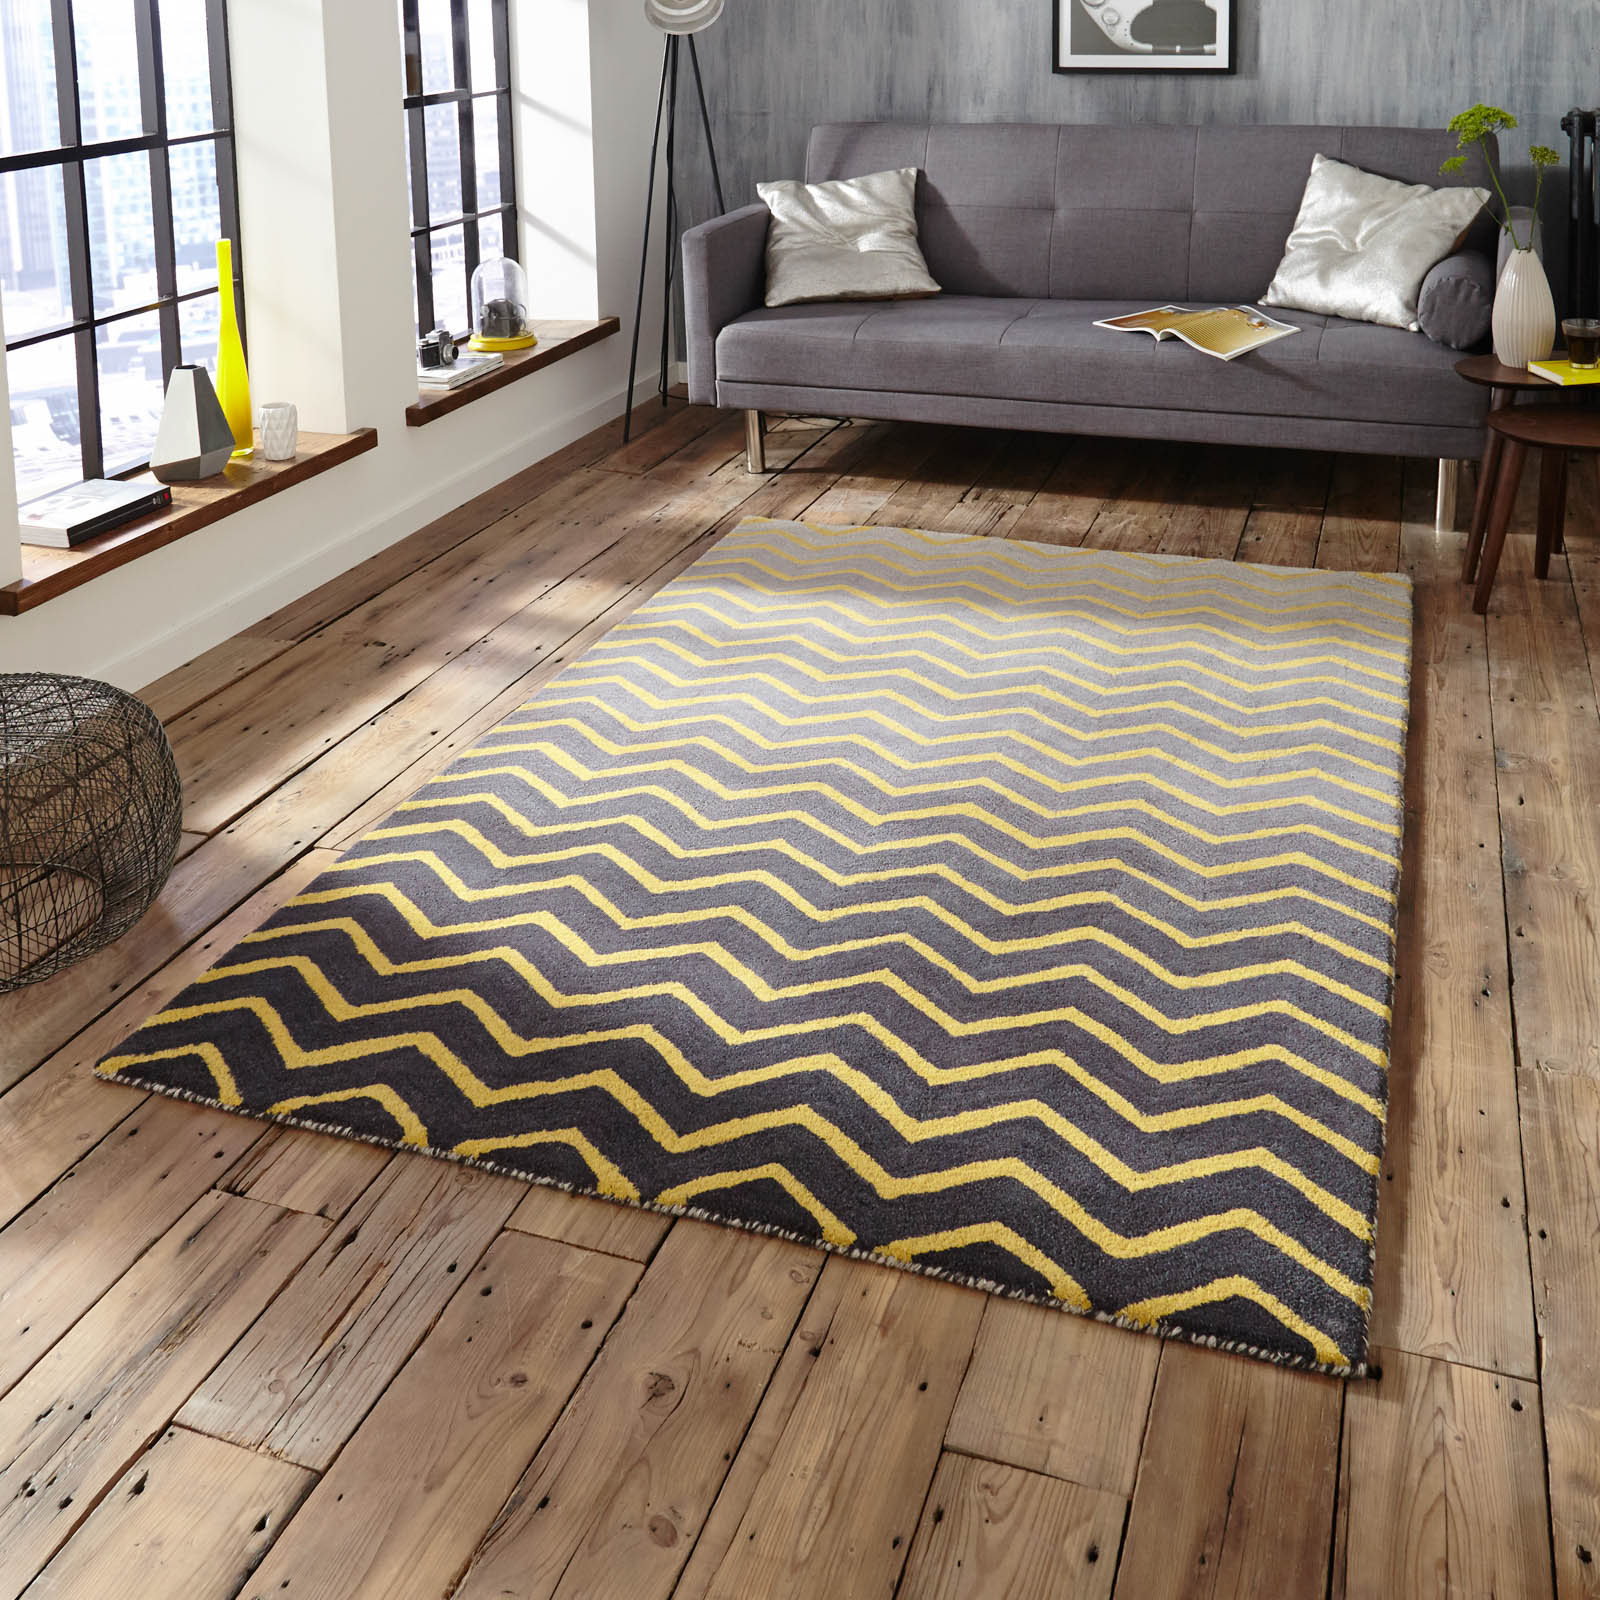 Spectrum Rug for student bedroom rugs